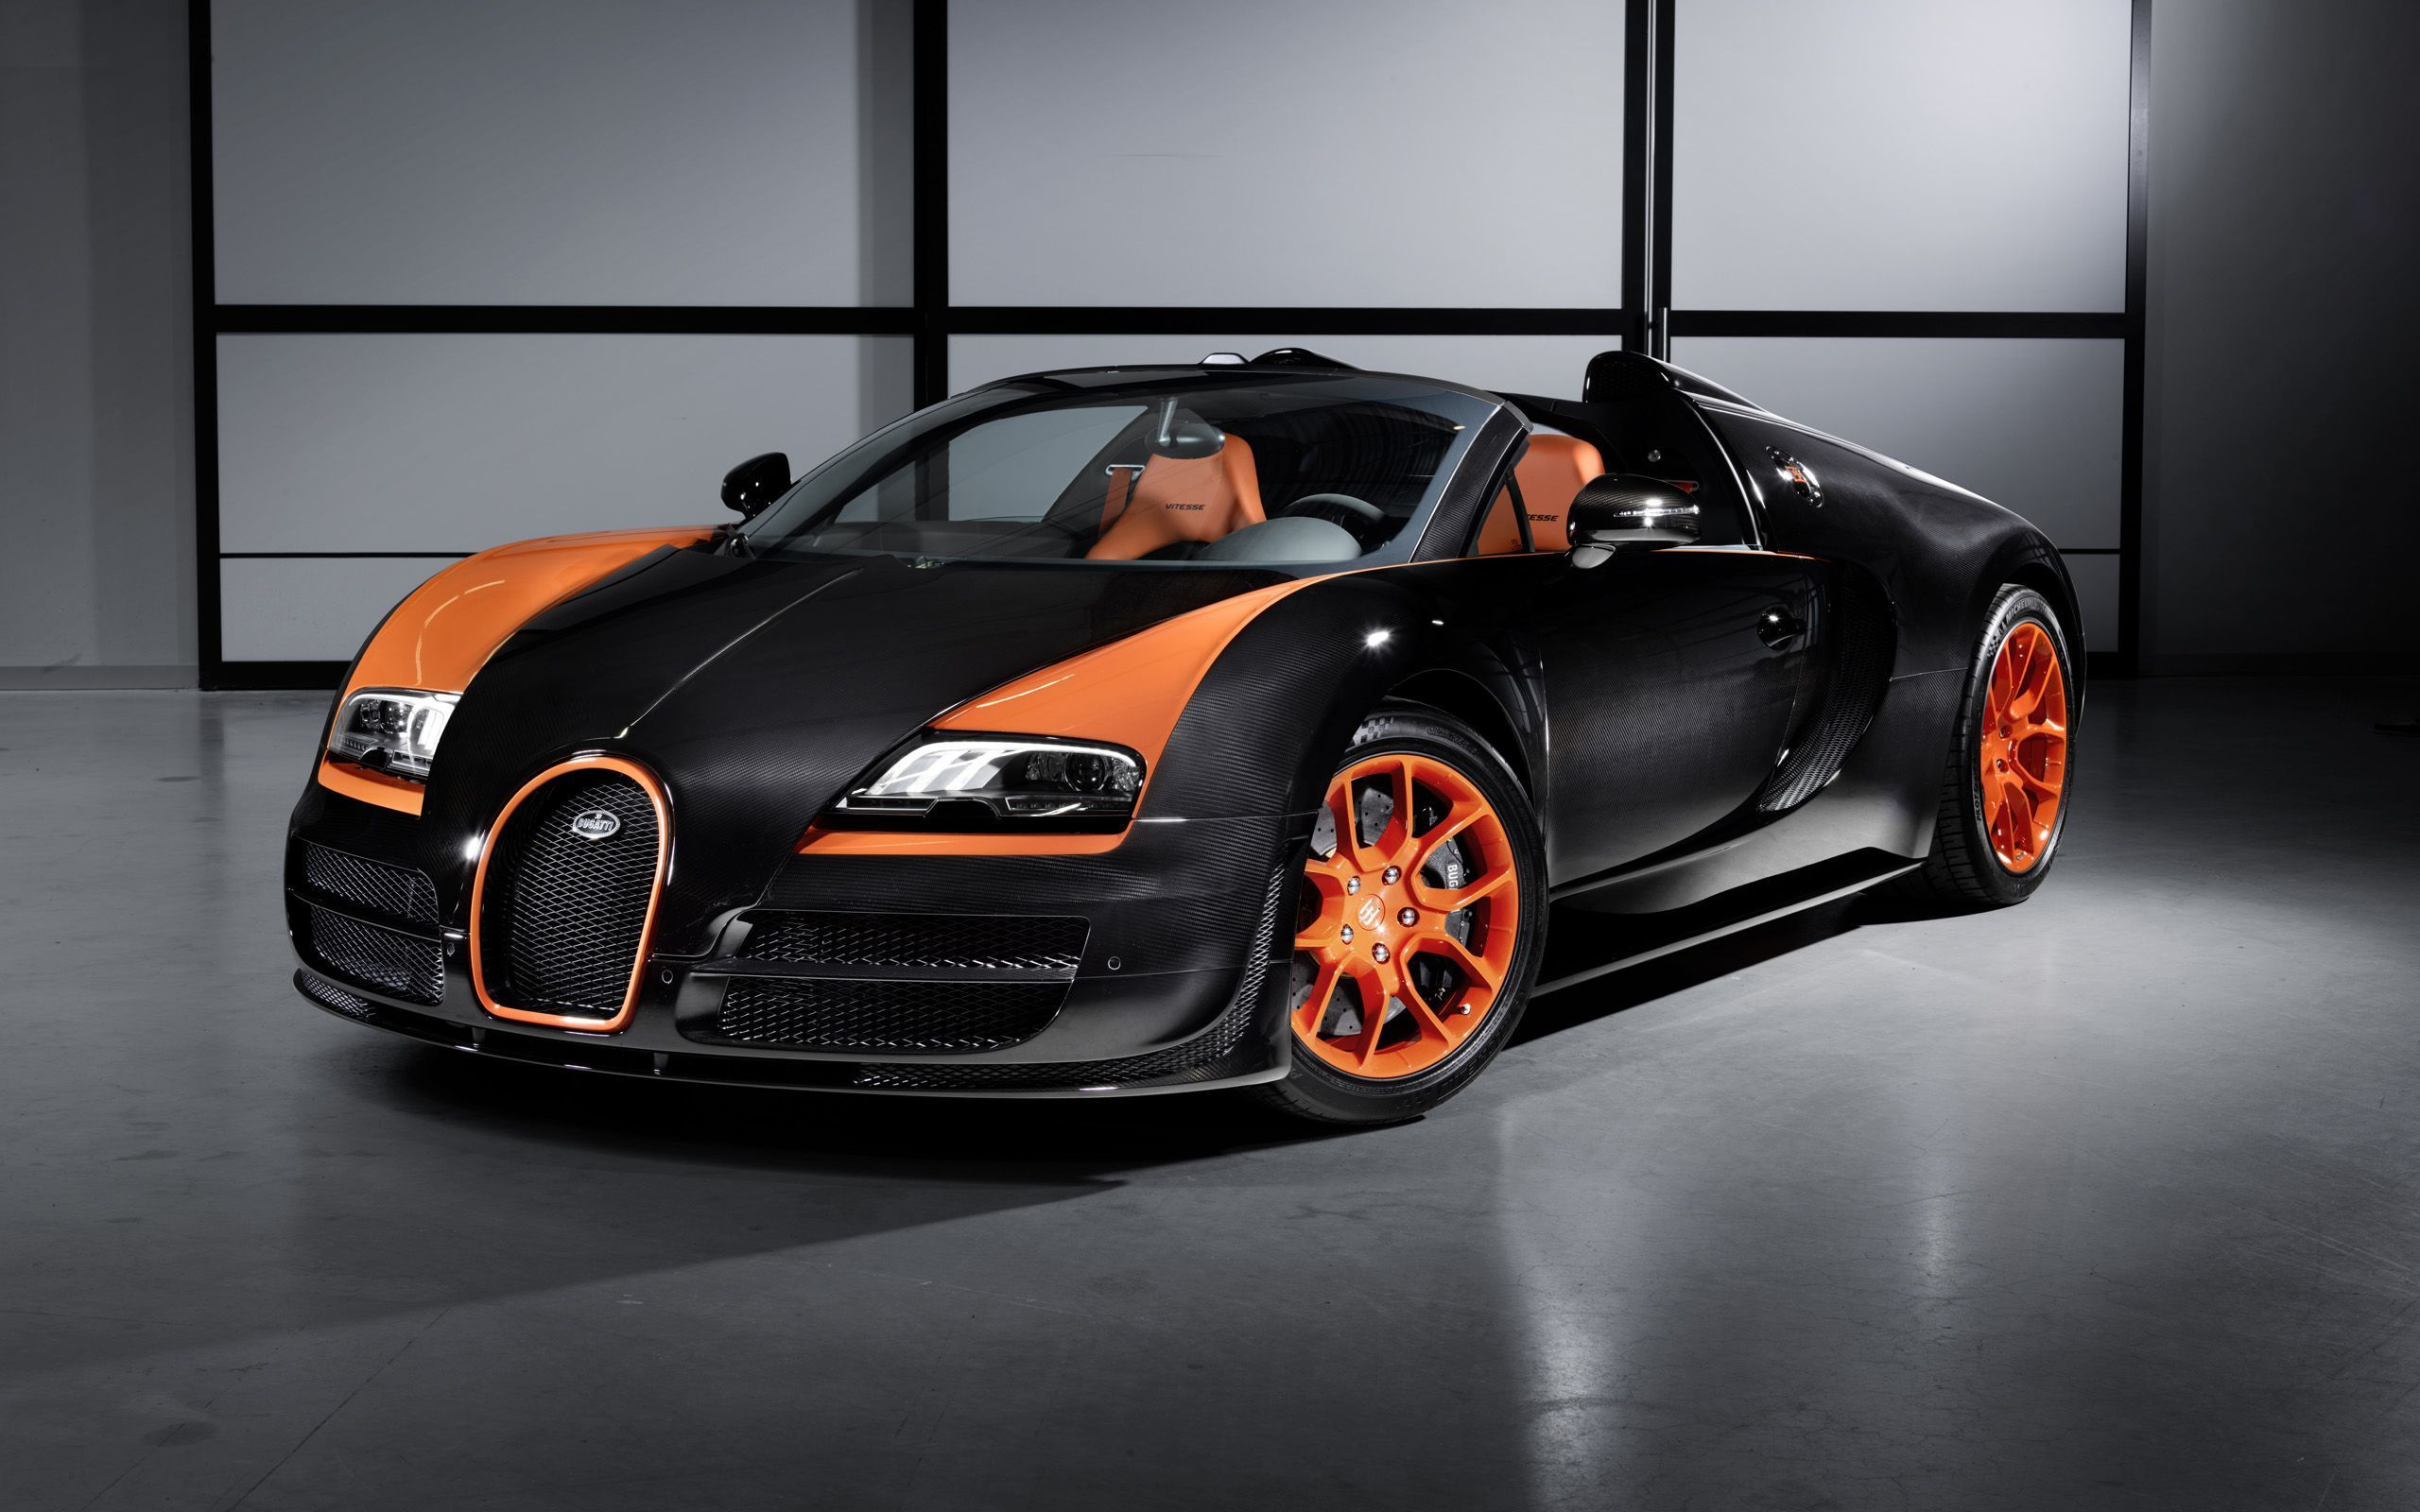 349b3f719f0ddd289be56c1d8967230e Cozy Bugatti Veyron and Chiron Difference Cars Trend